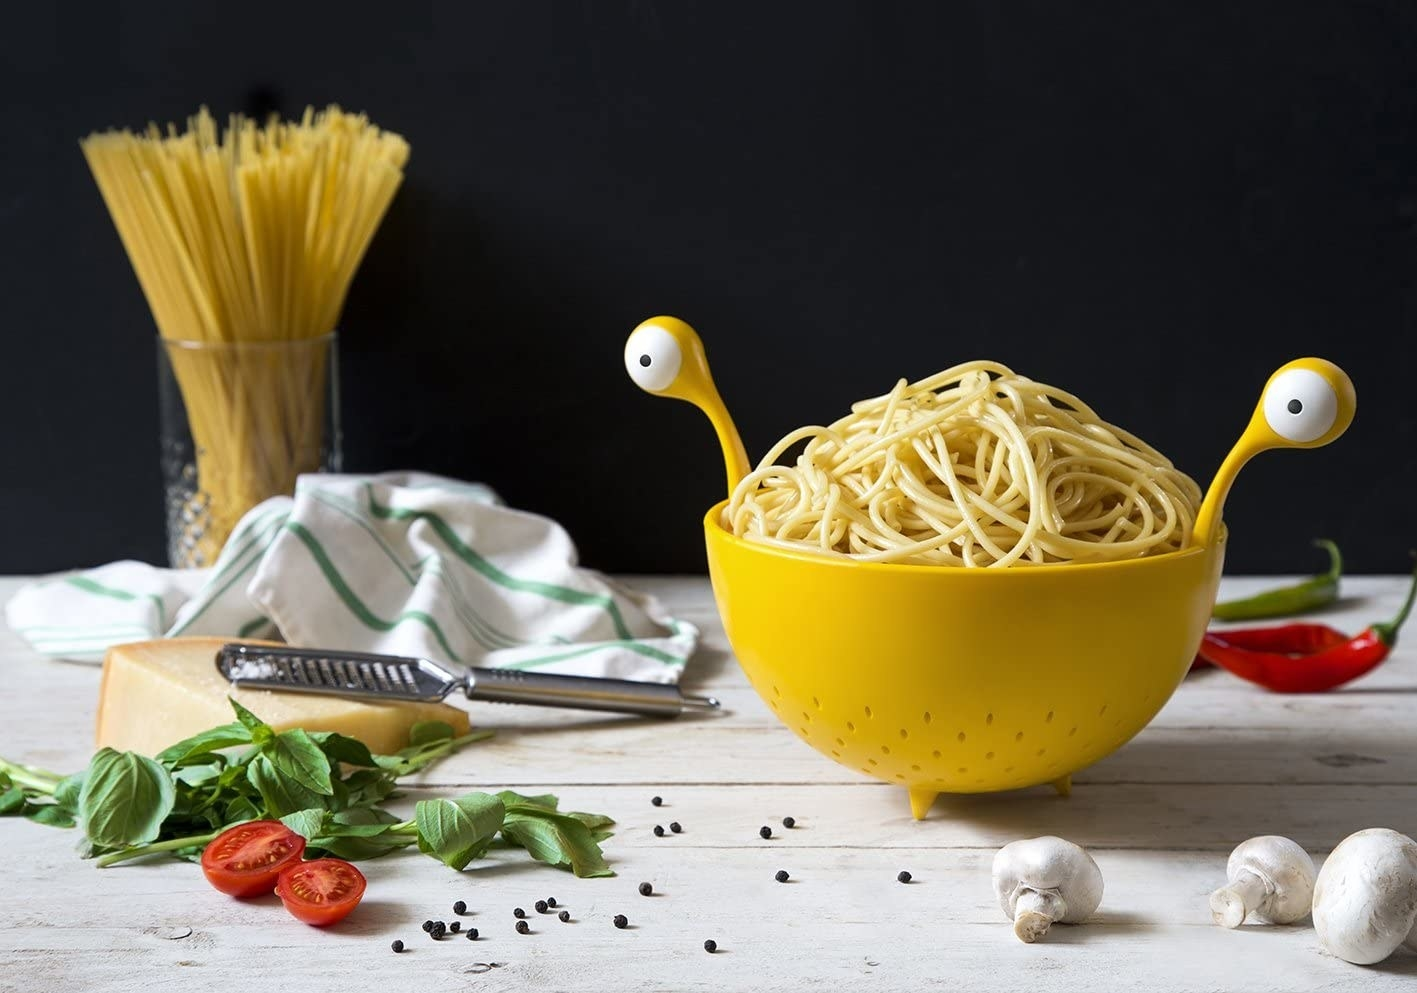 A monster shaped colander with eyeballs for handles next to fresh basil, mushrooms, tomatoes, and cheese